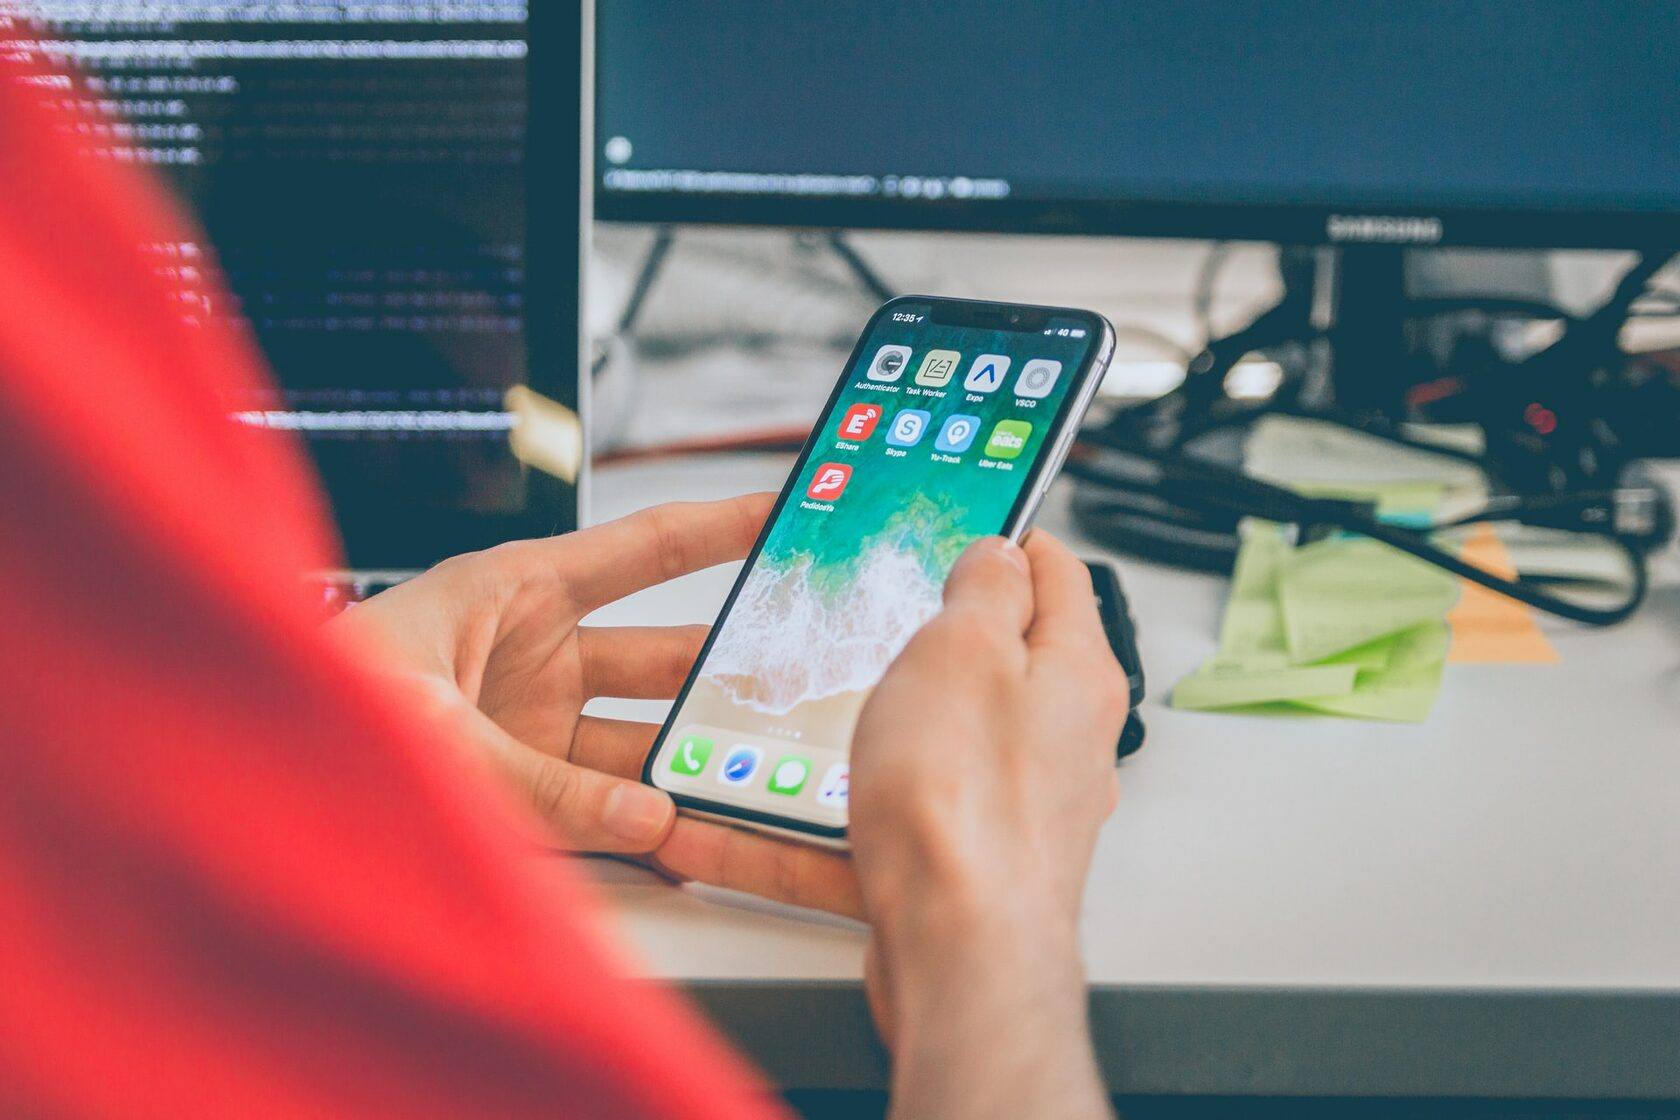 Image showing a man in an office setting holding a phone with a few no code apps on it.